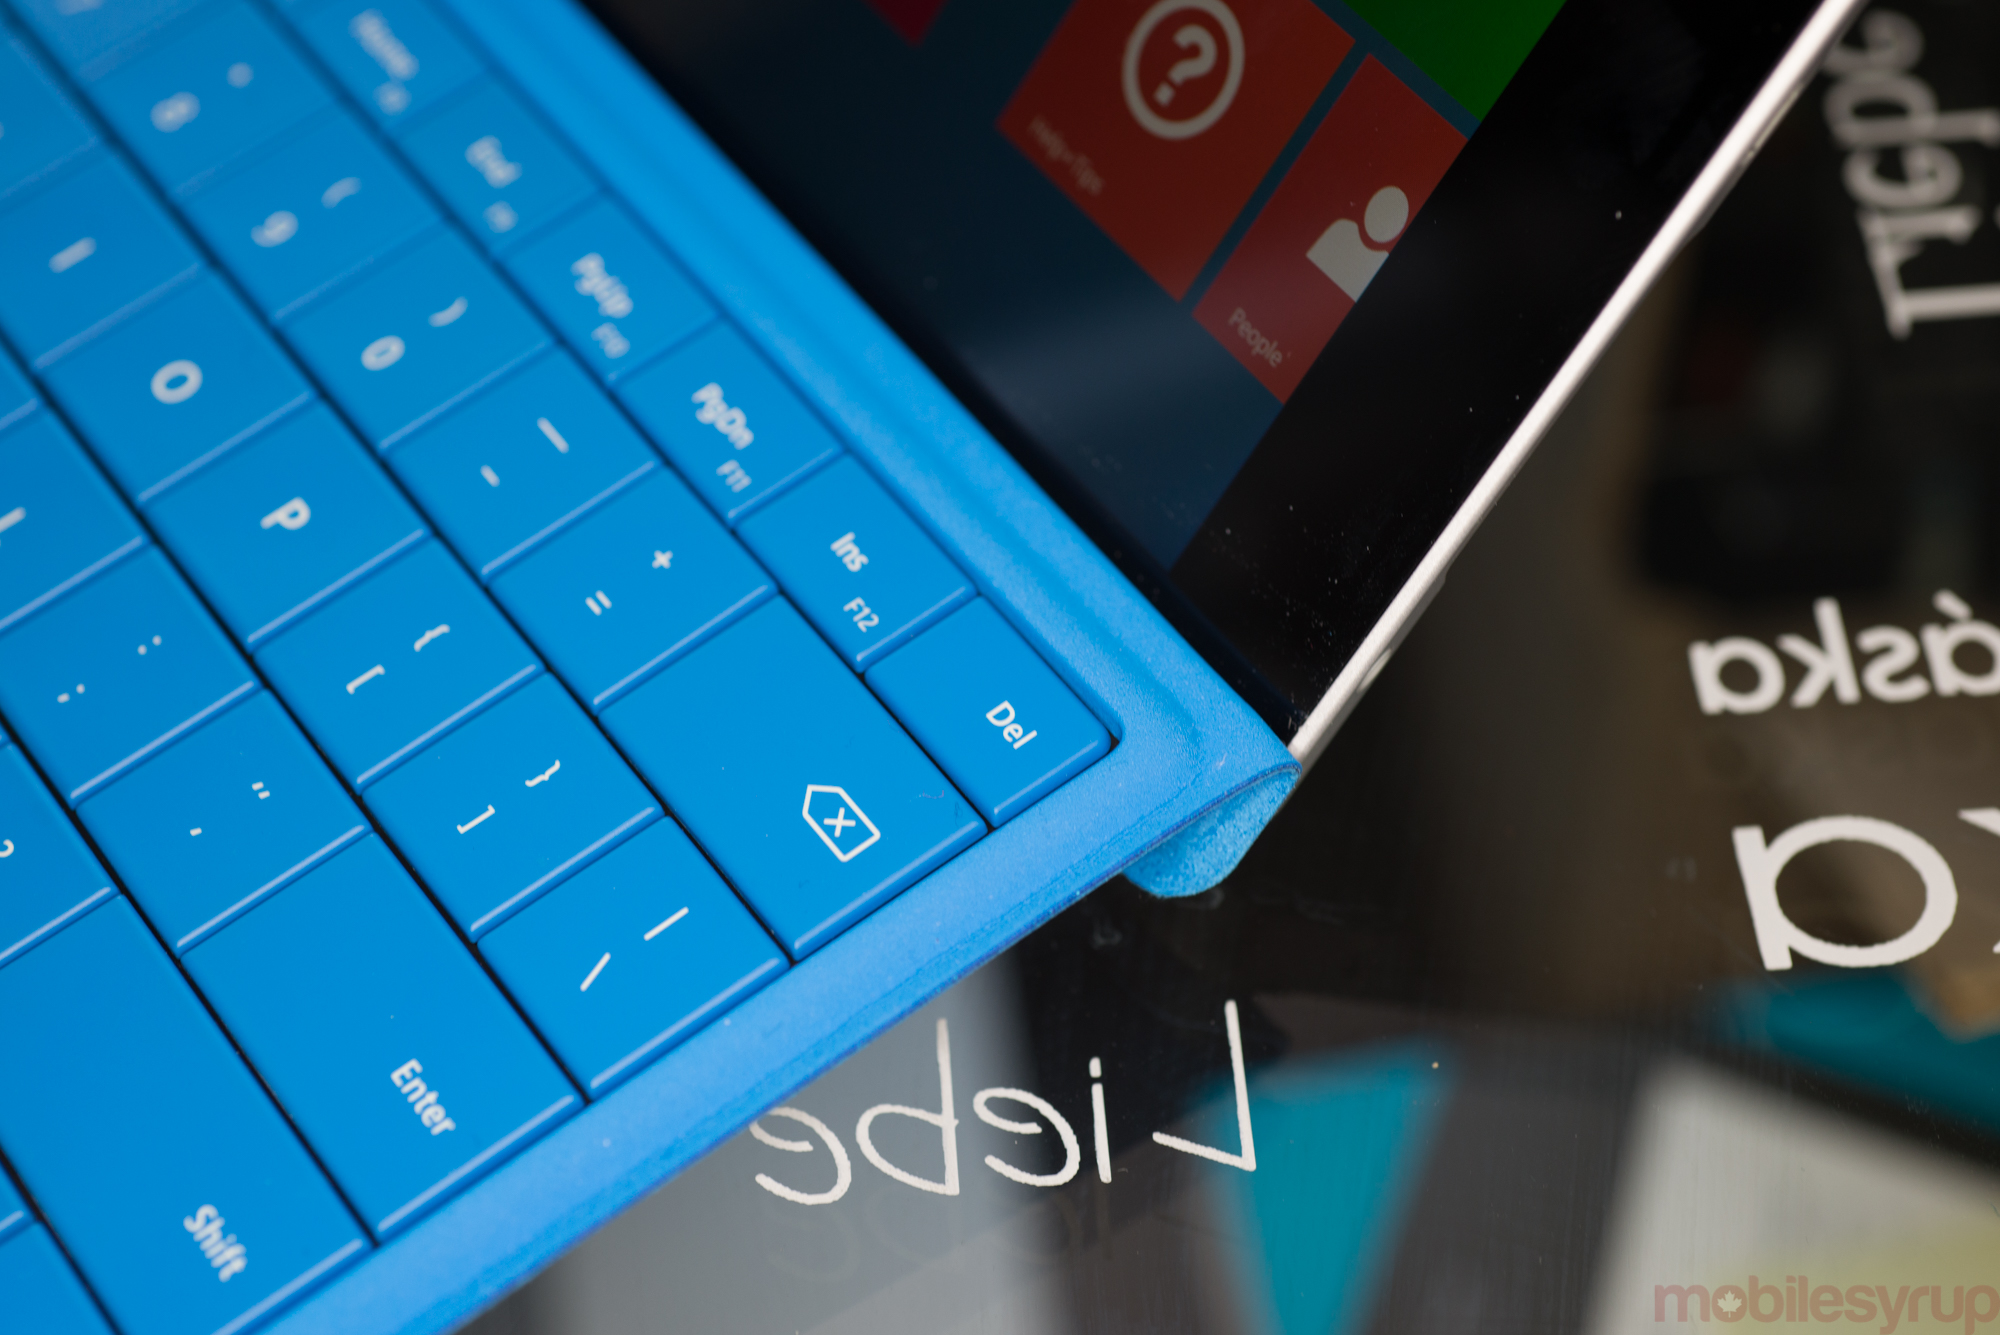 surface3review-5985